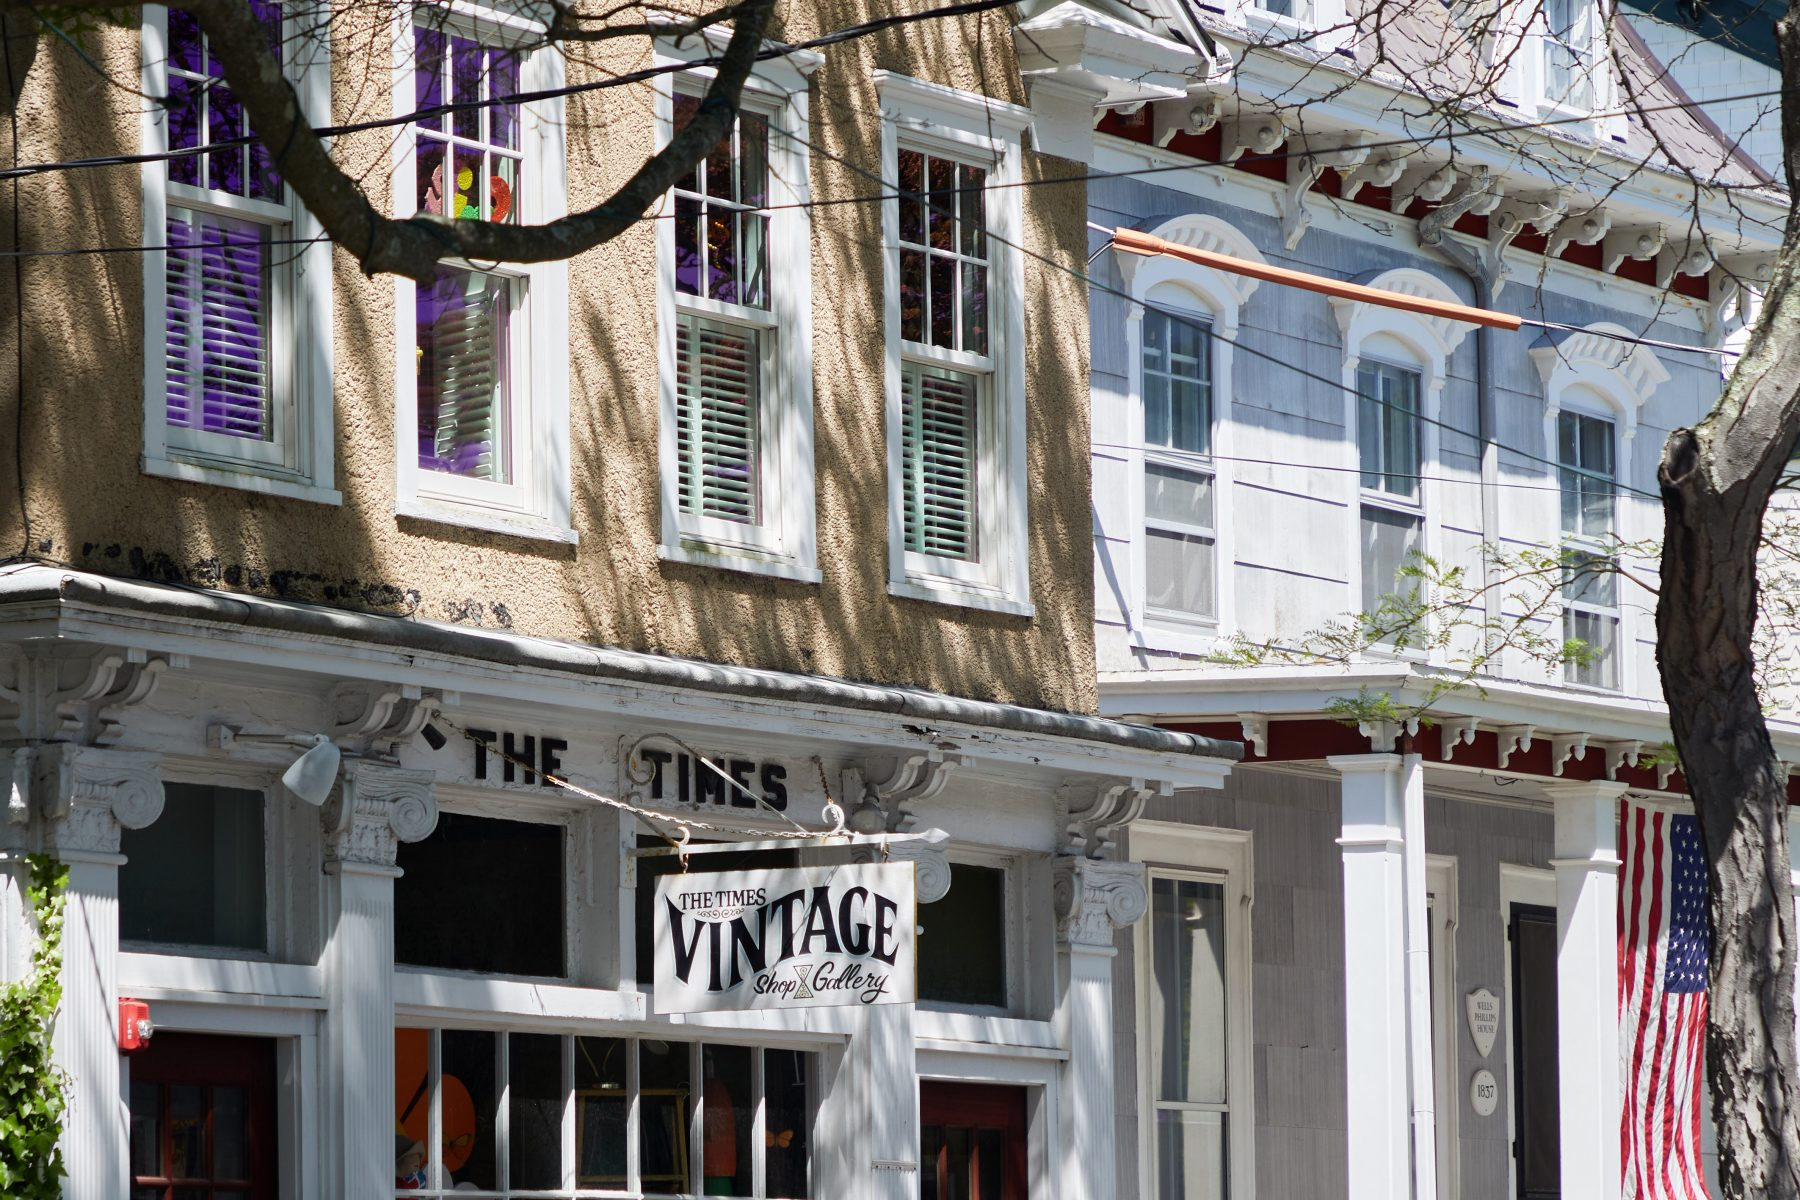 Exterior view of The Times Vintage Shop & Gallery